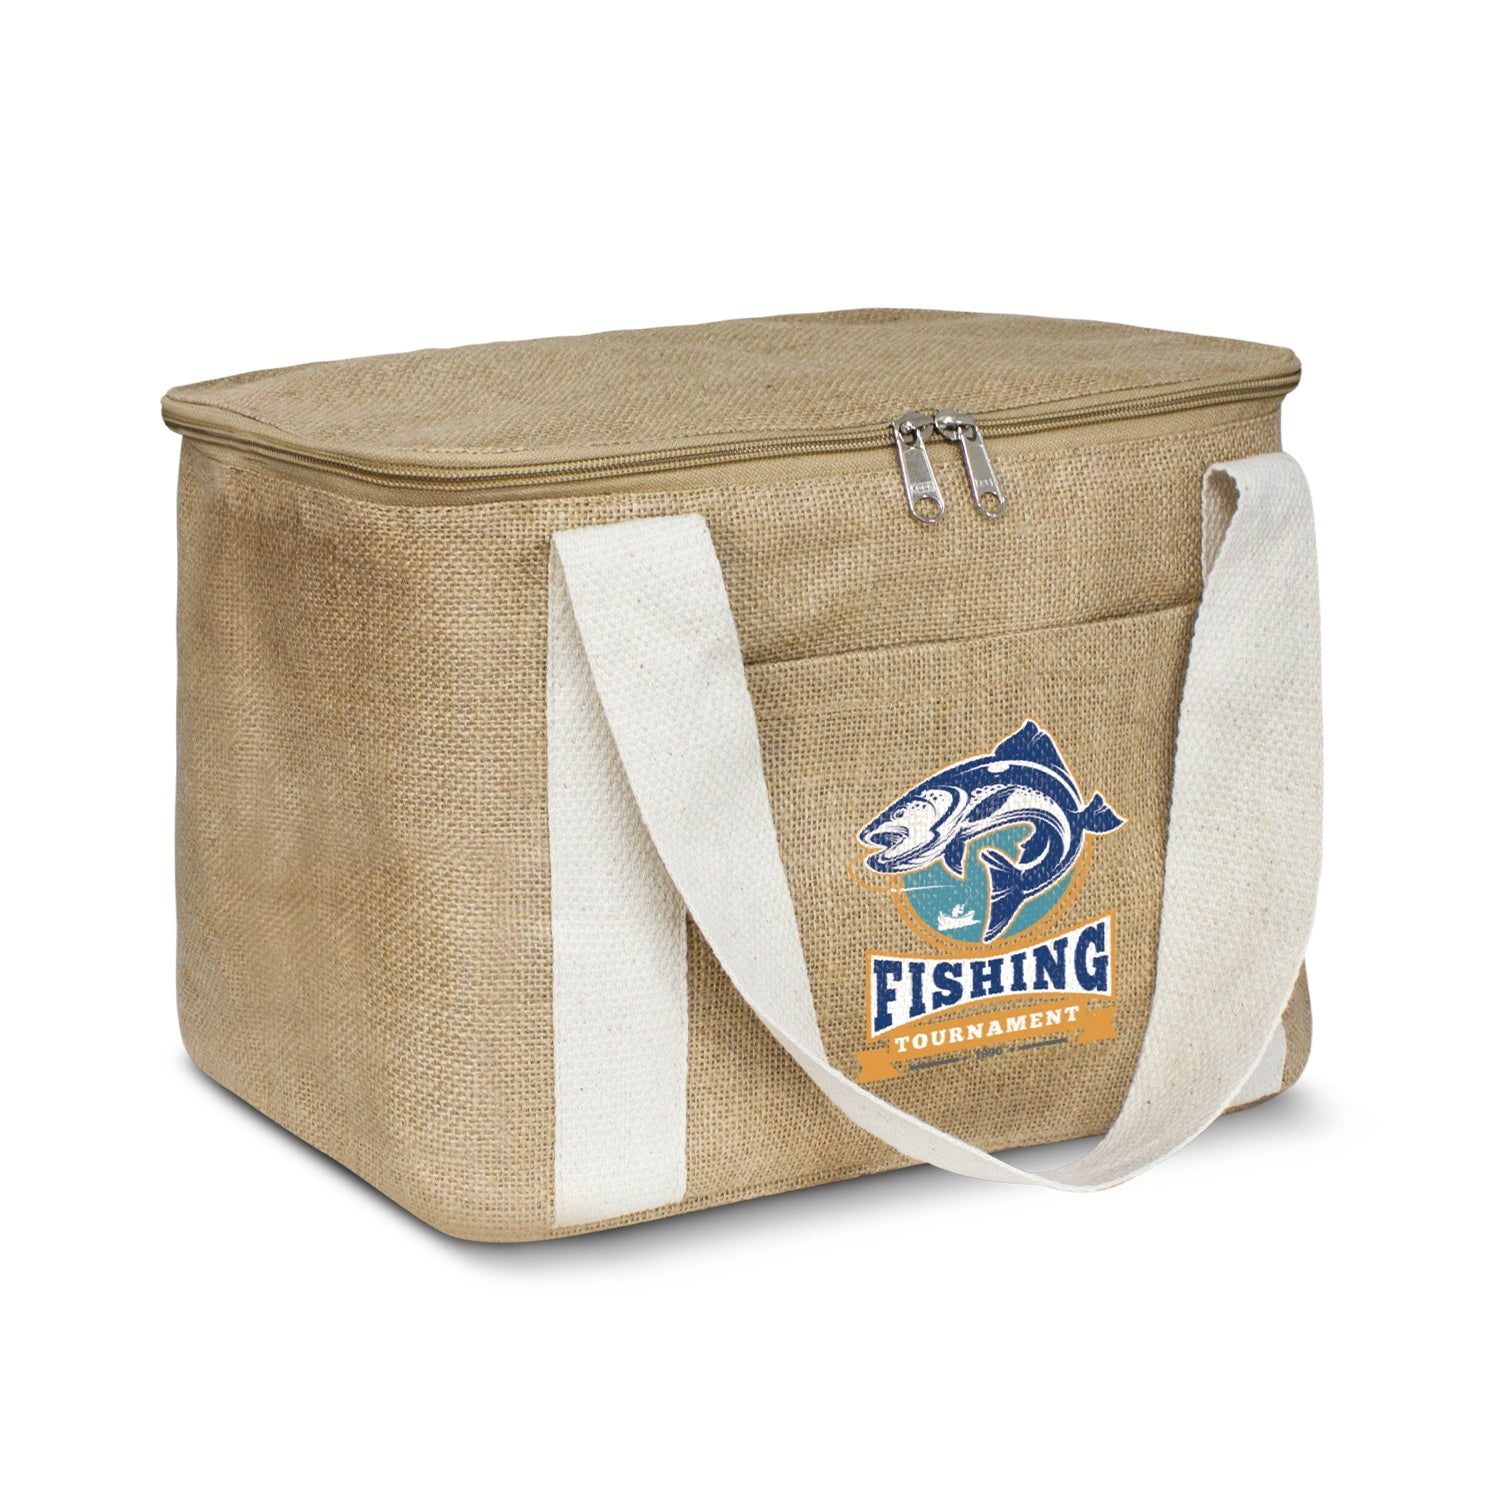 Stock Jute Cooler Bag-Medium (SJB-17T) - greenpac.com.au